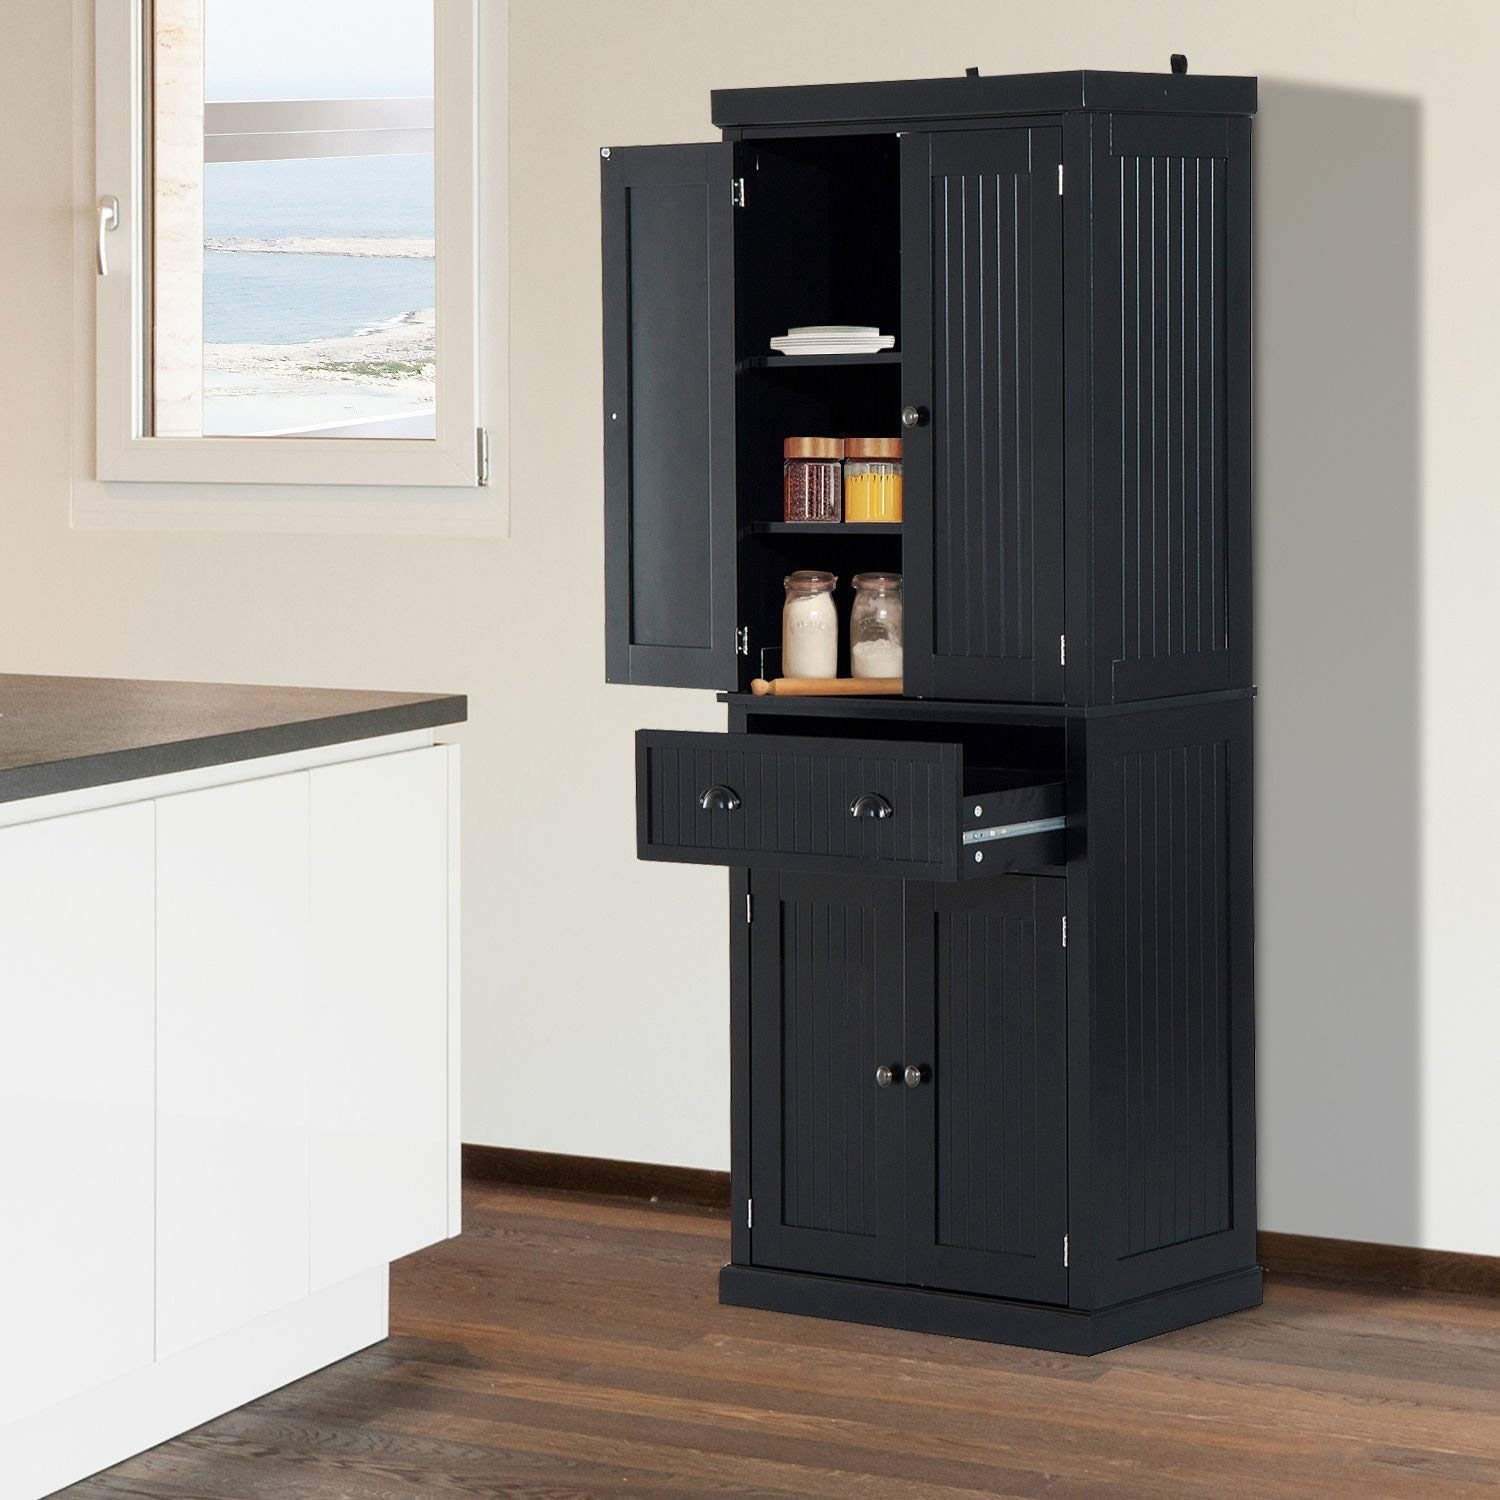 """Festnight Tall Kitchen Pantry Storage Cabinet, Traditional Standing Kitchen Pantry Cupboard Cabinet Black 72"""" by Festnight (Image #1)"""